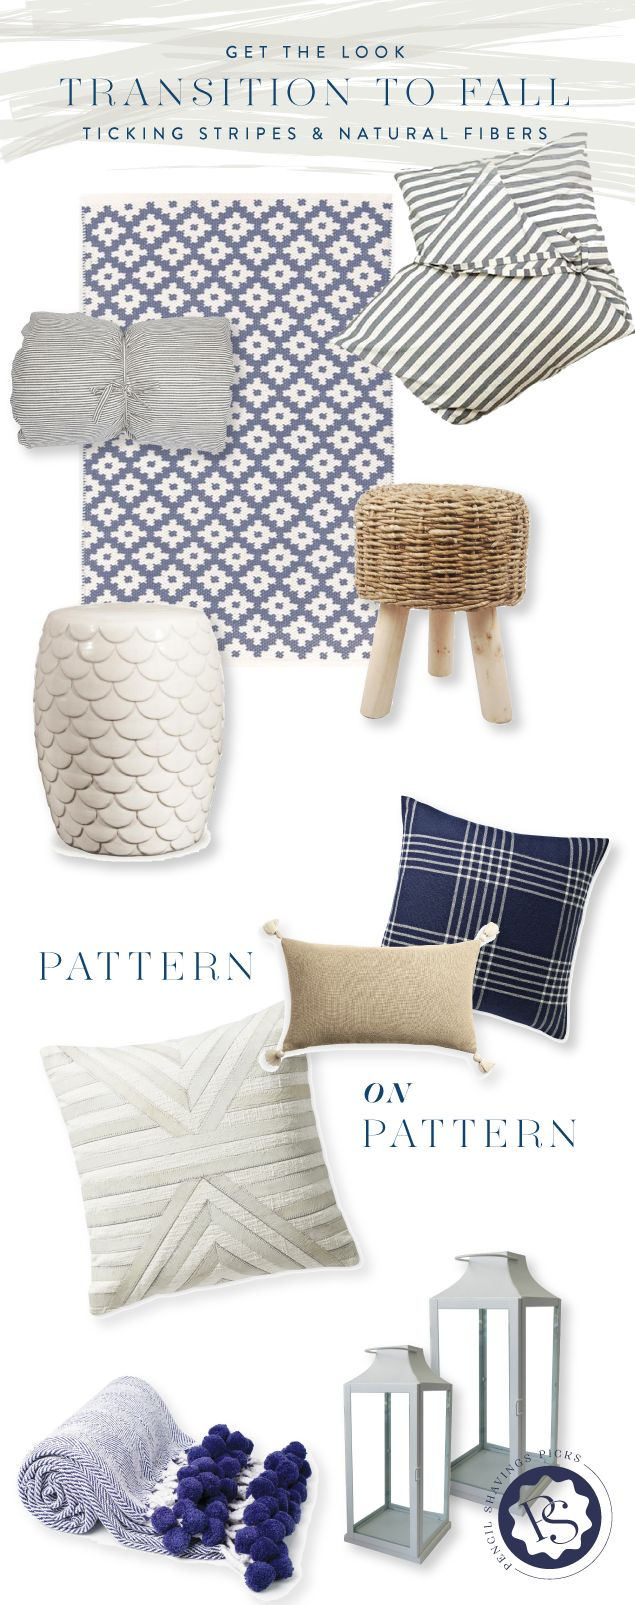 Update your decor for fall with some variations on classic designs. Houndstooth, wool plaids, raffia, and ticking stripes come together for a menswear-meets-Malibu look. www.pencilshavingsstudio.com